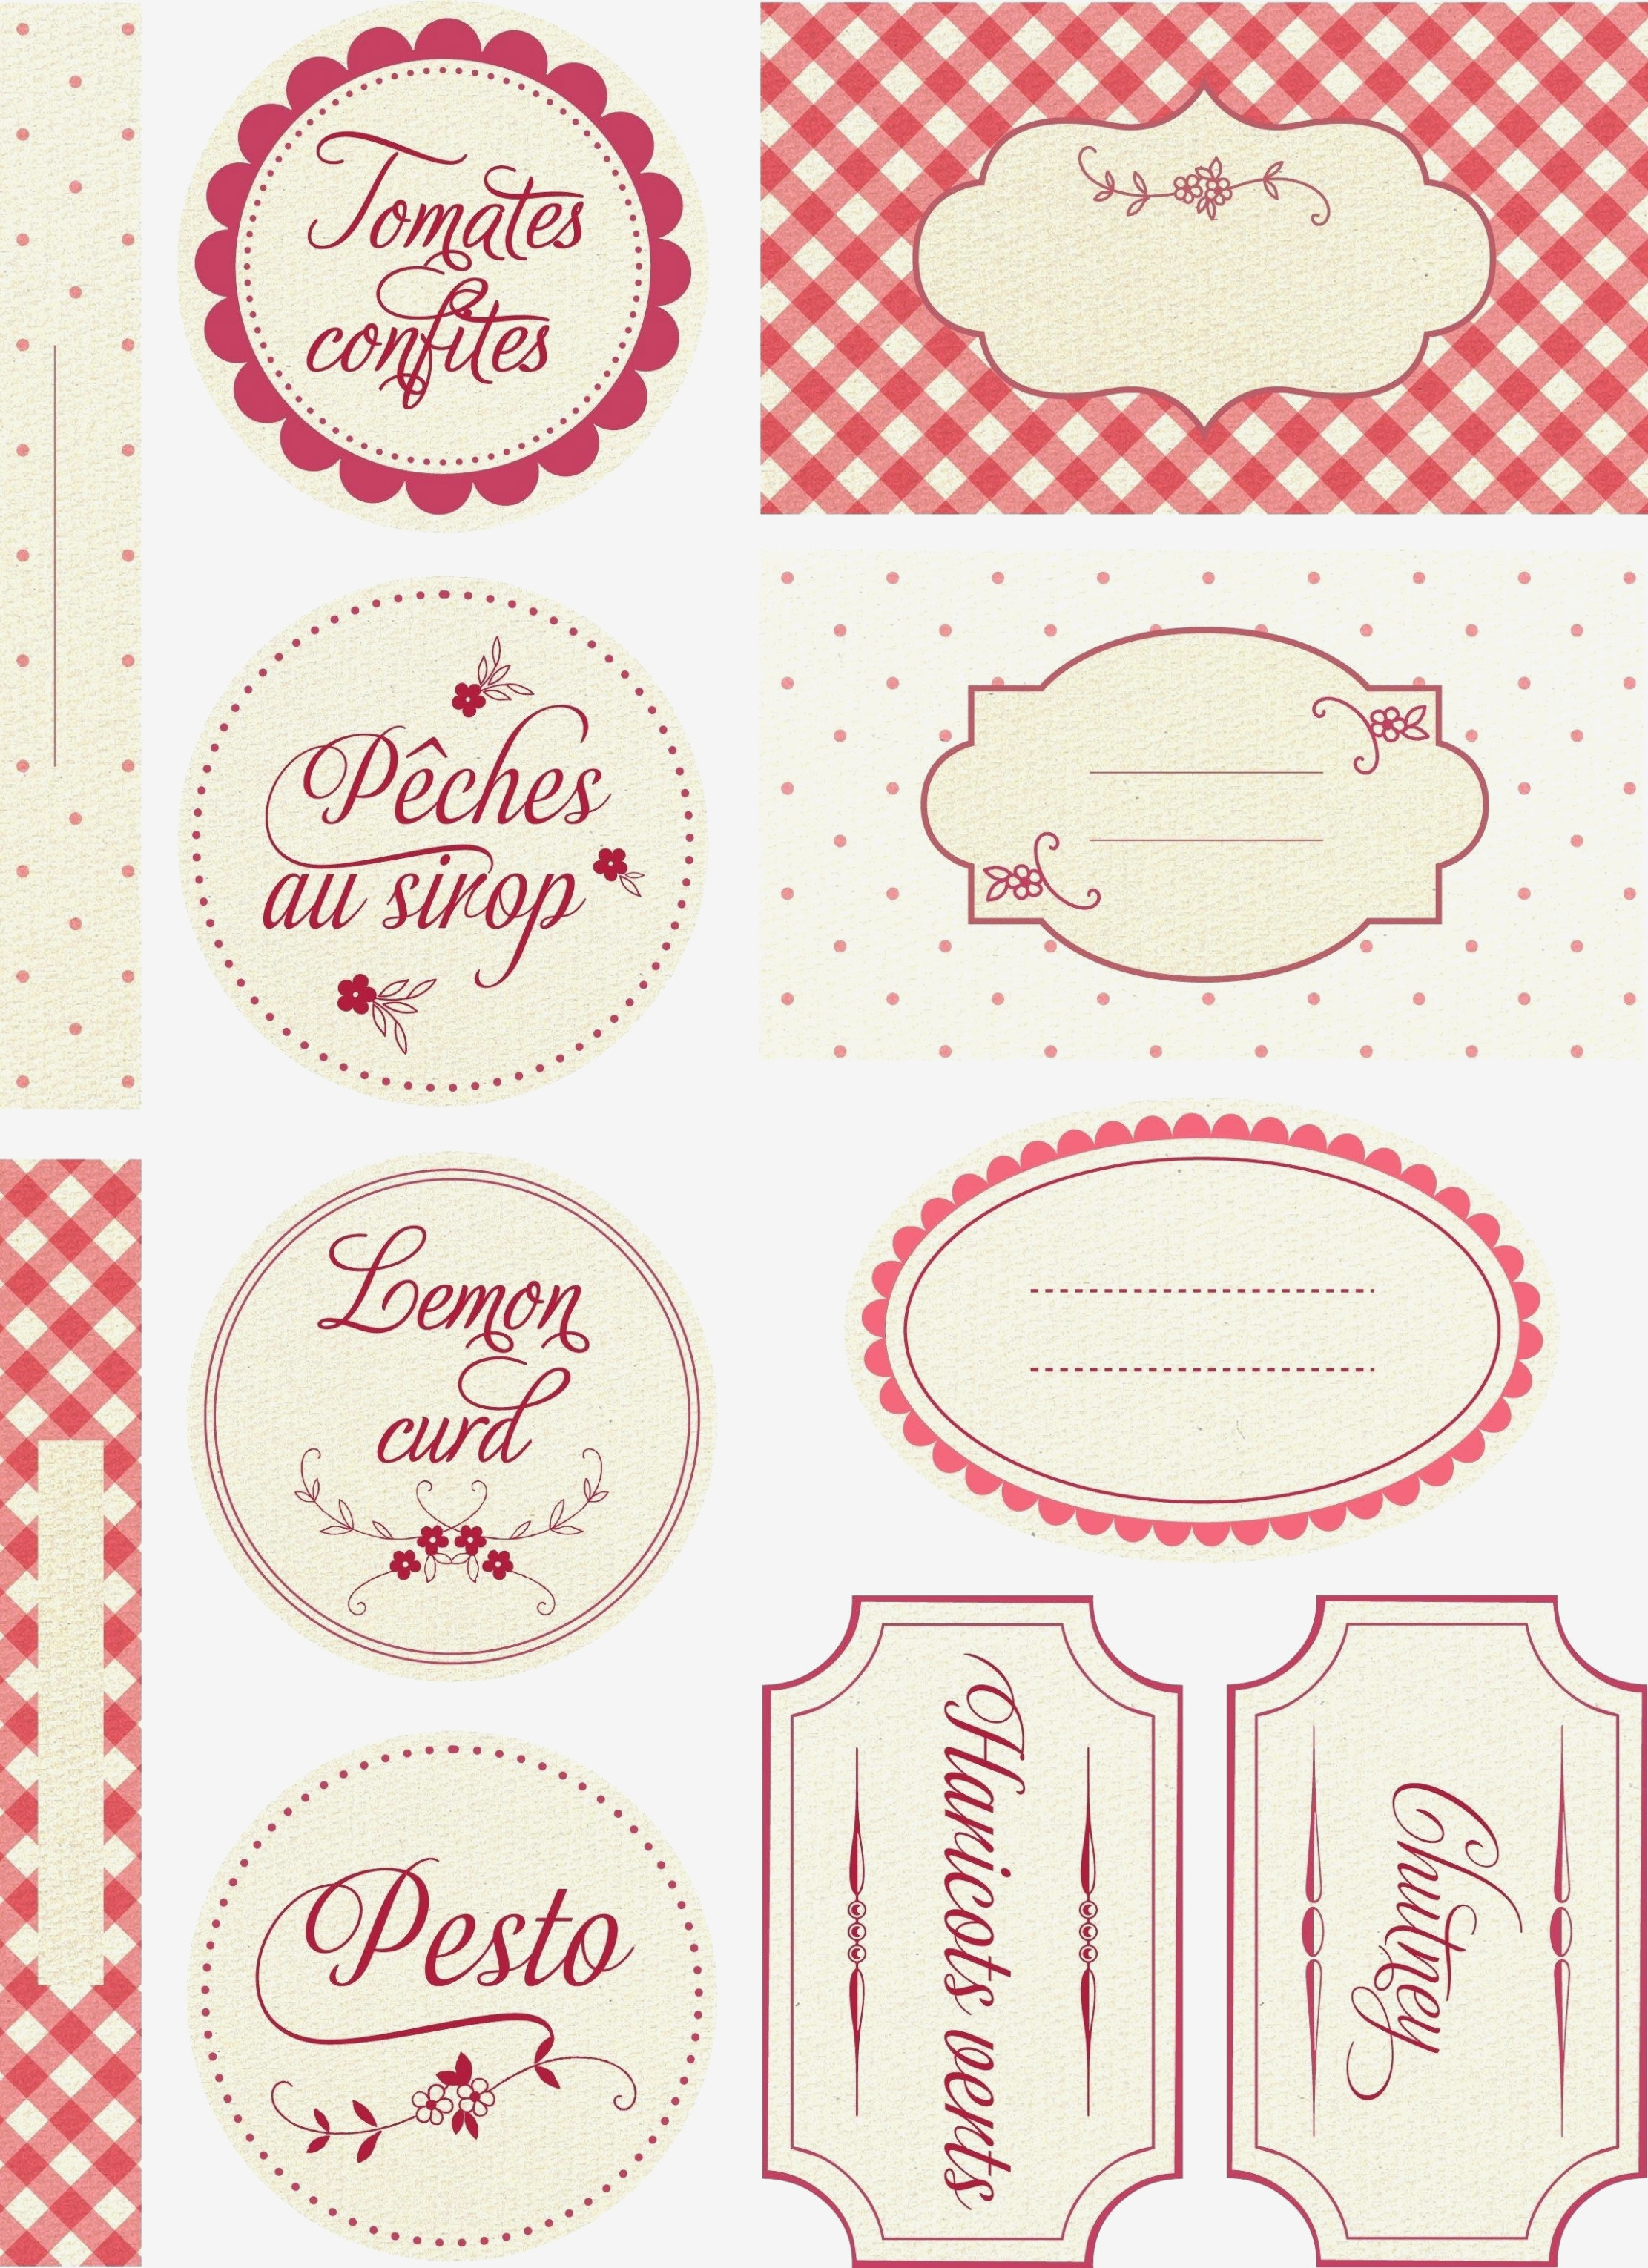 Free Printable Jam Labels Is | Label Maker Ideas Information - Free Printable Jam Labels